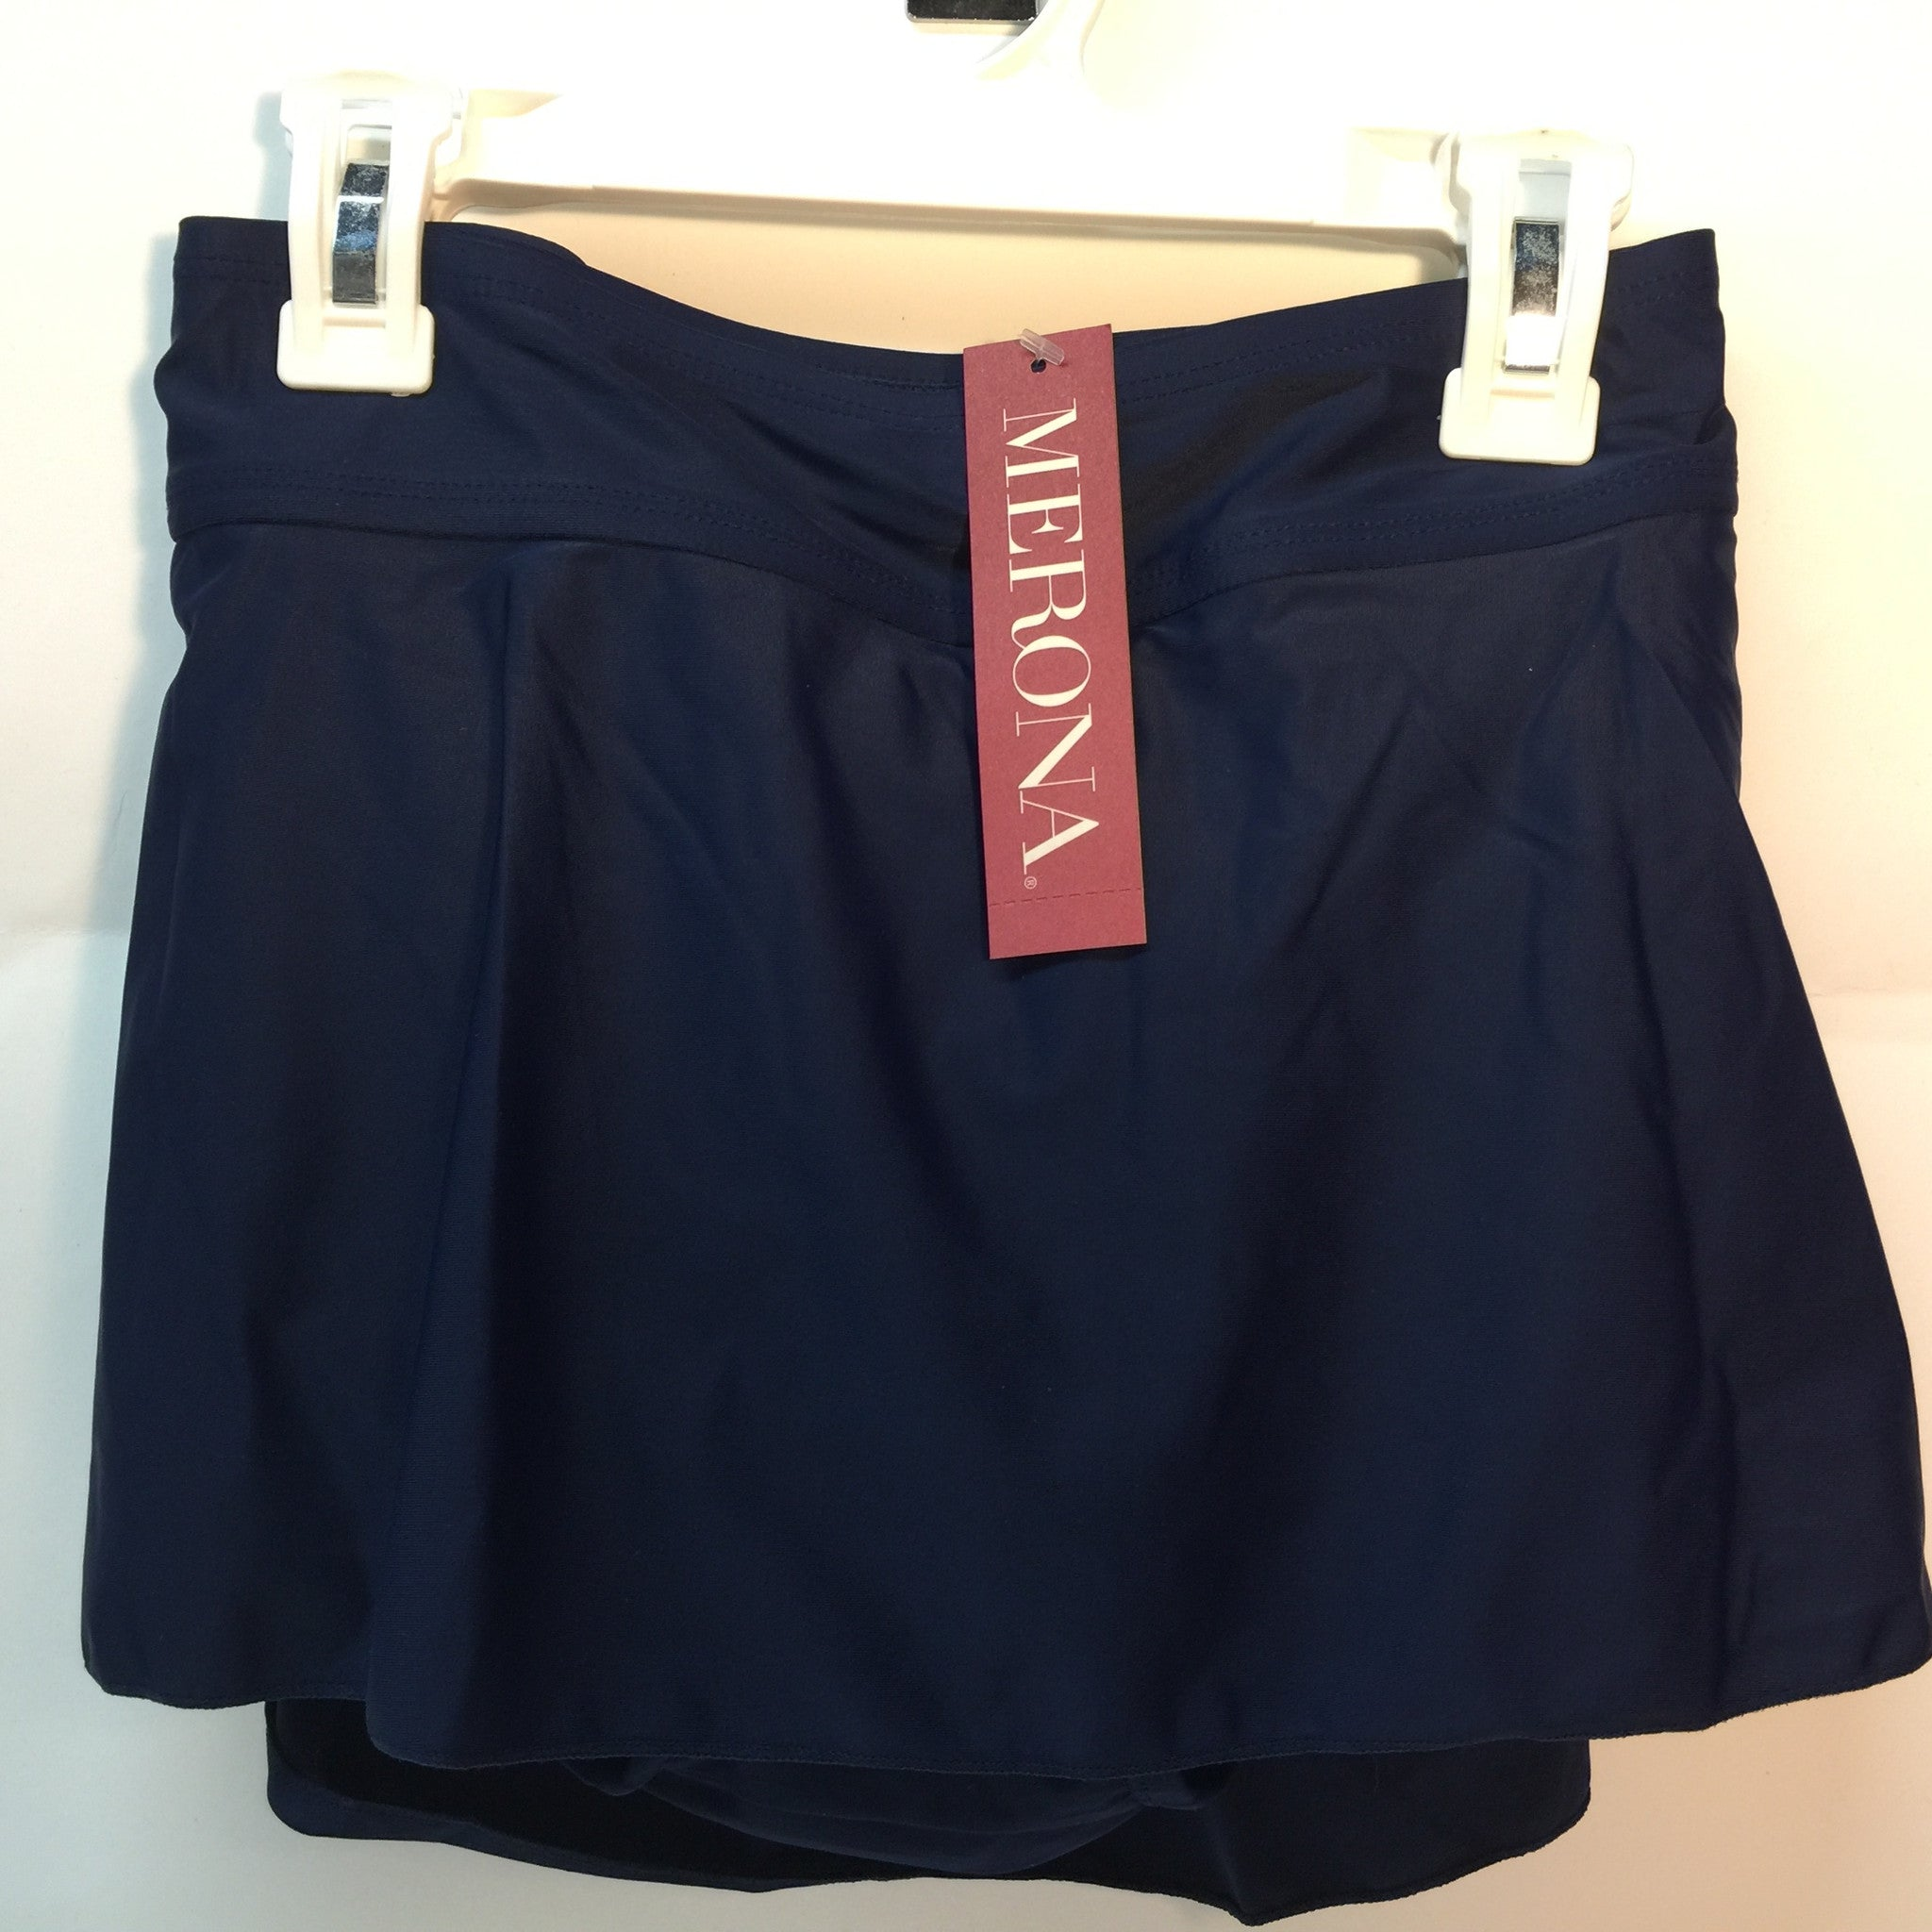 New Womens Swim Skirt by Merona - Black Navy All sizes - LiquidationOutlet.ca